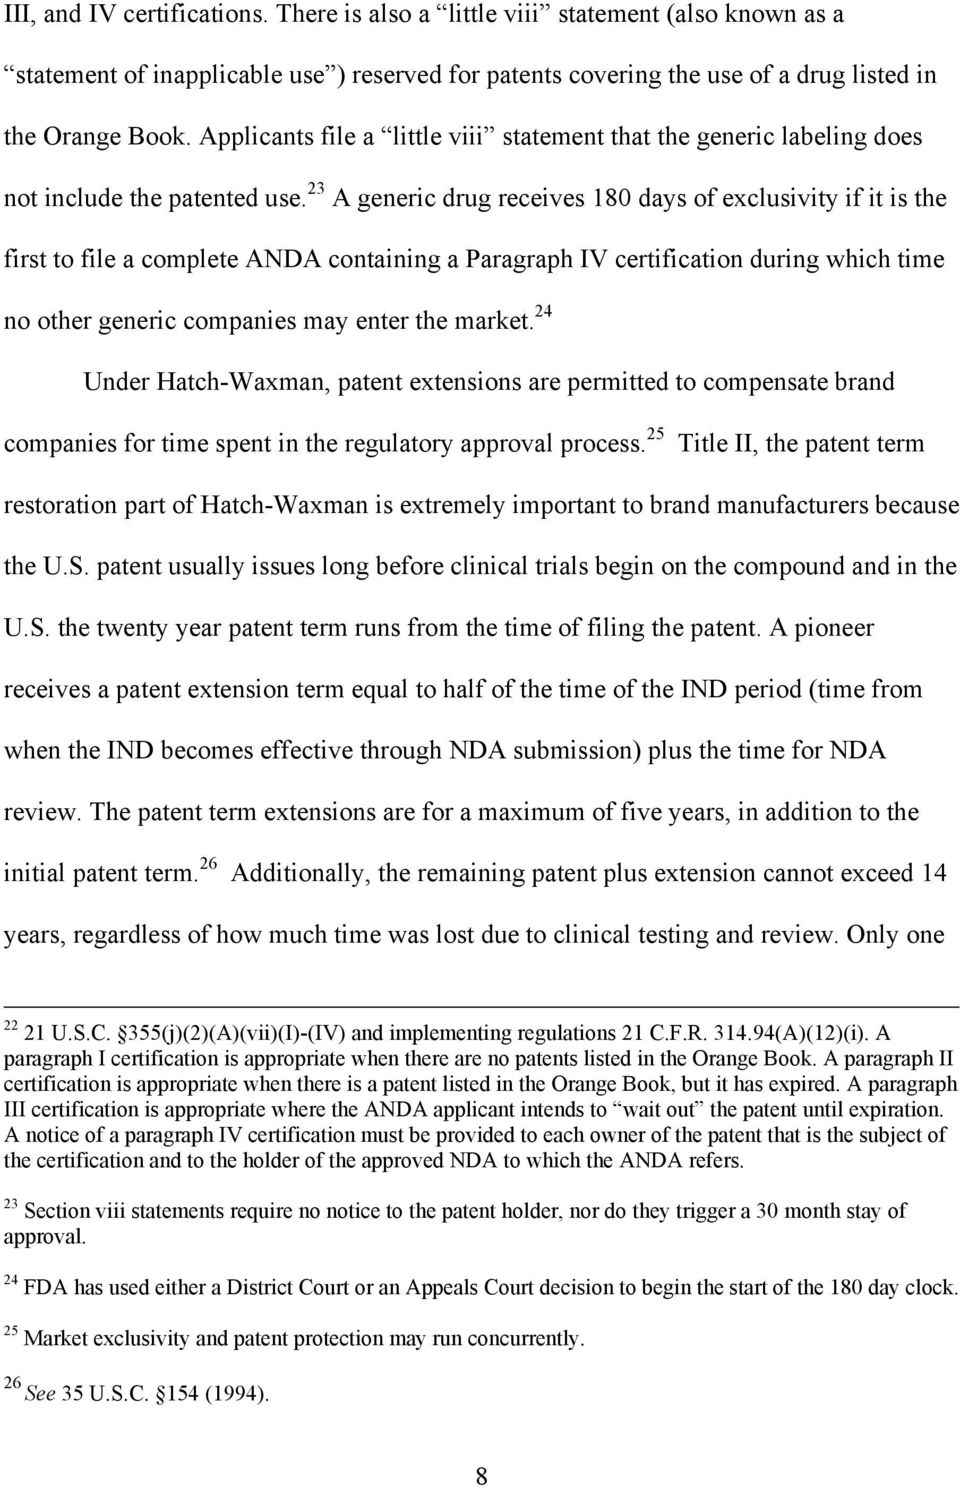 Determinants Of Patenting In The Us Pharmaceutical Industry By